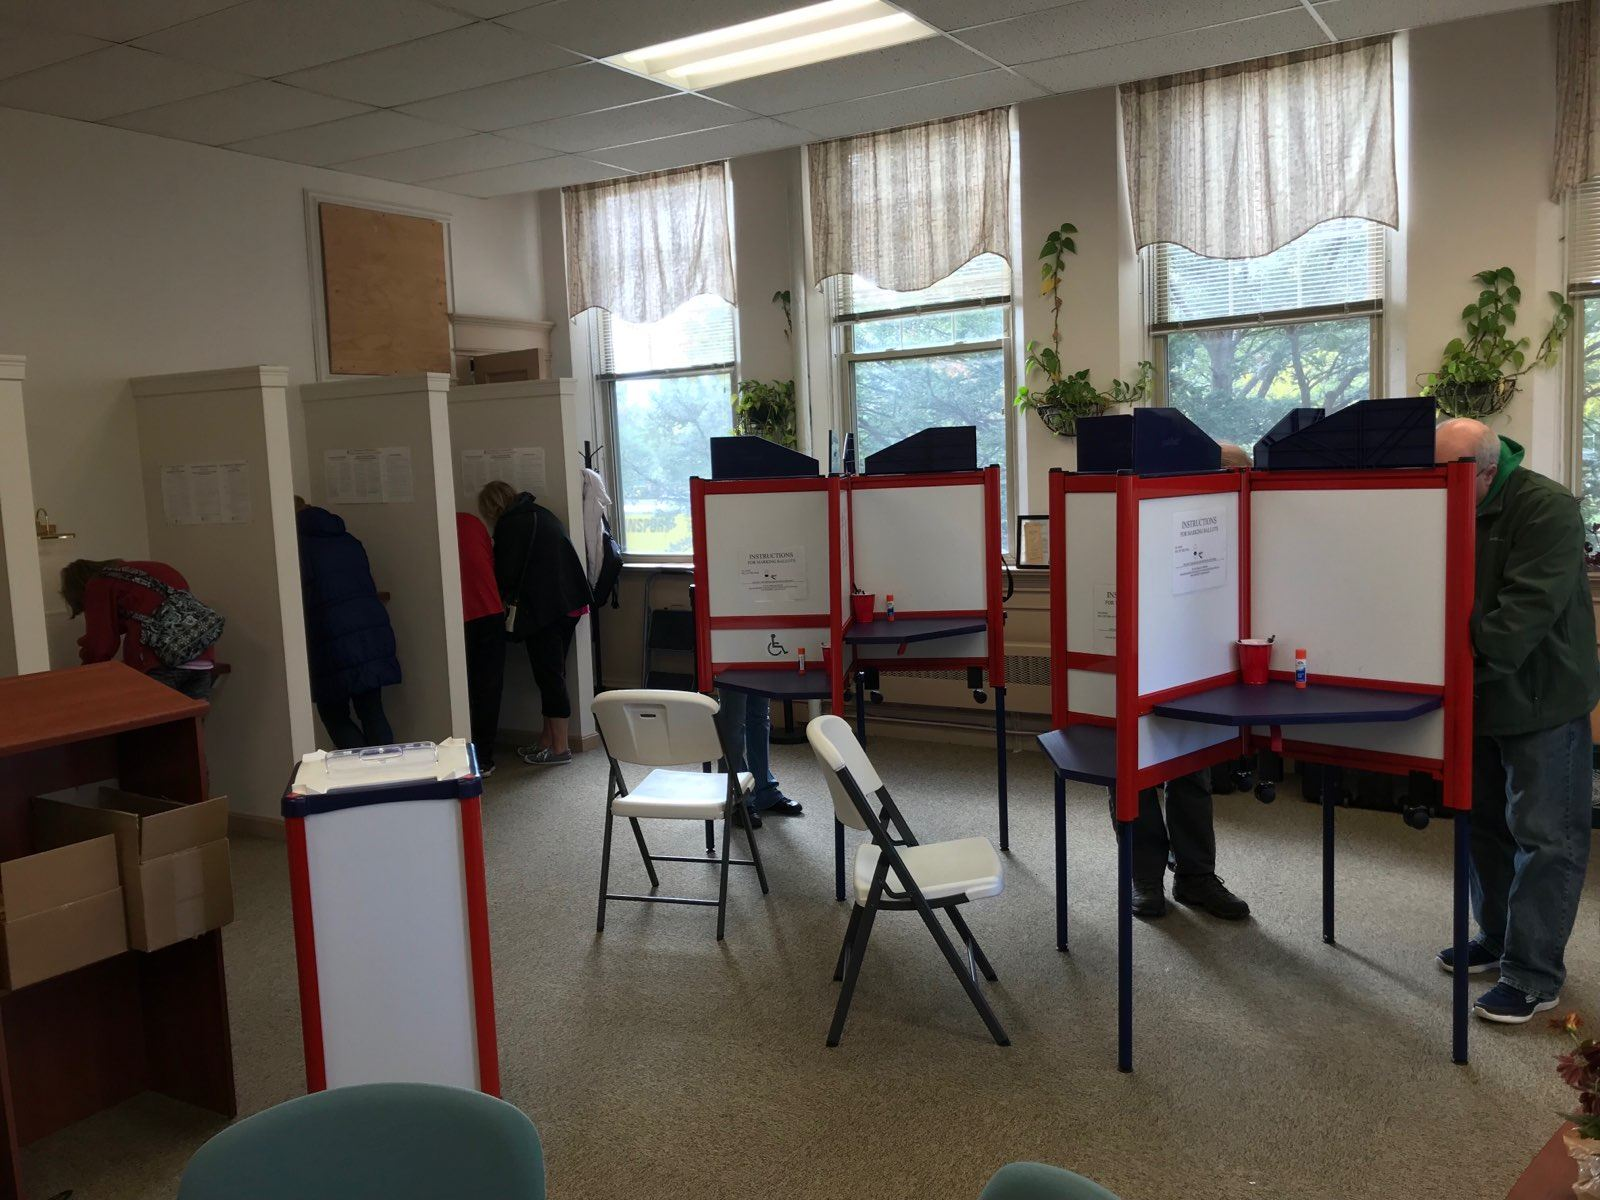 Early Voting Booths